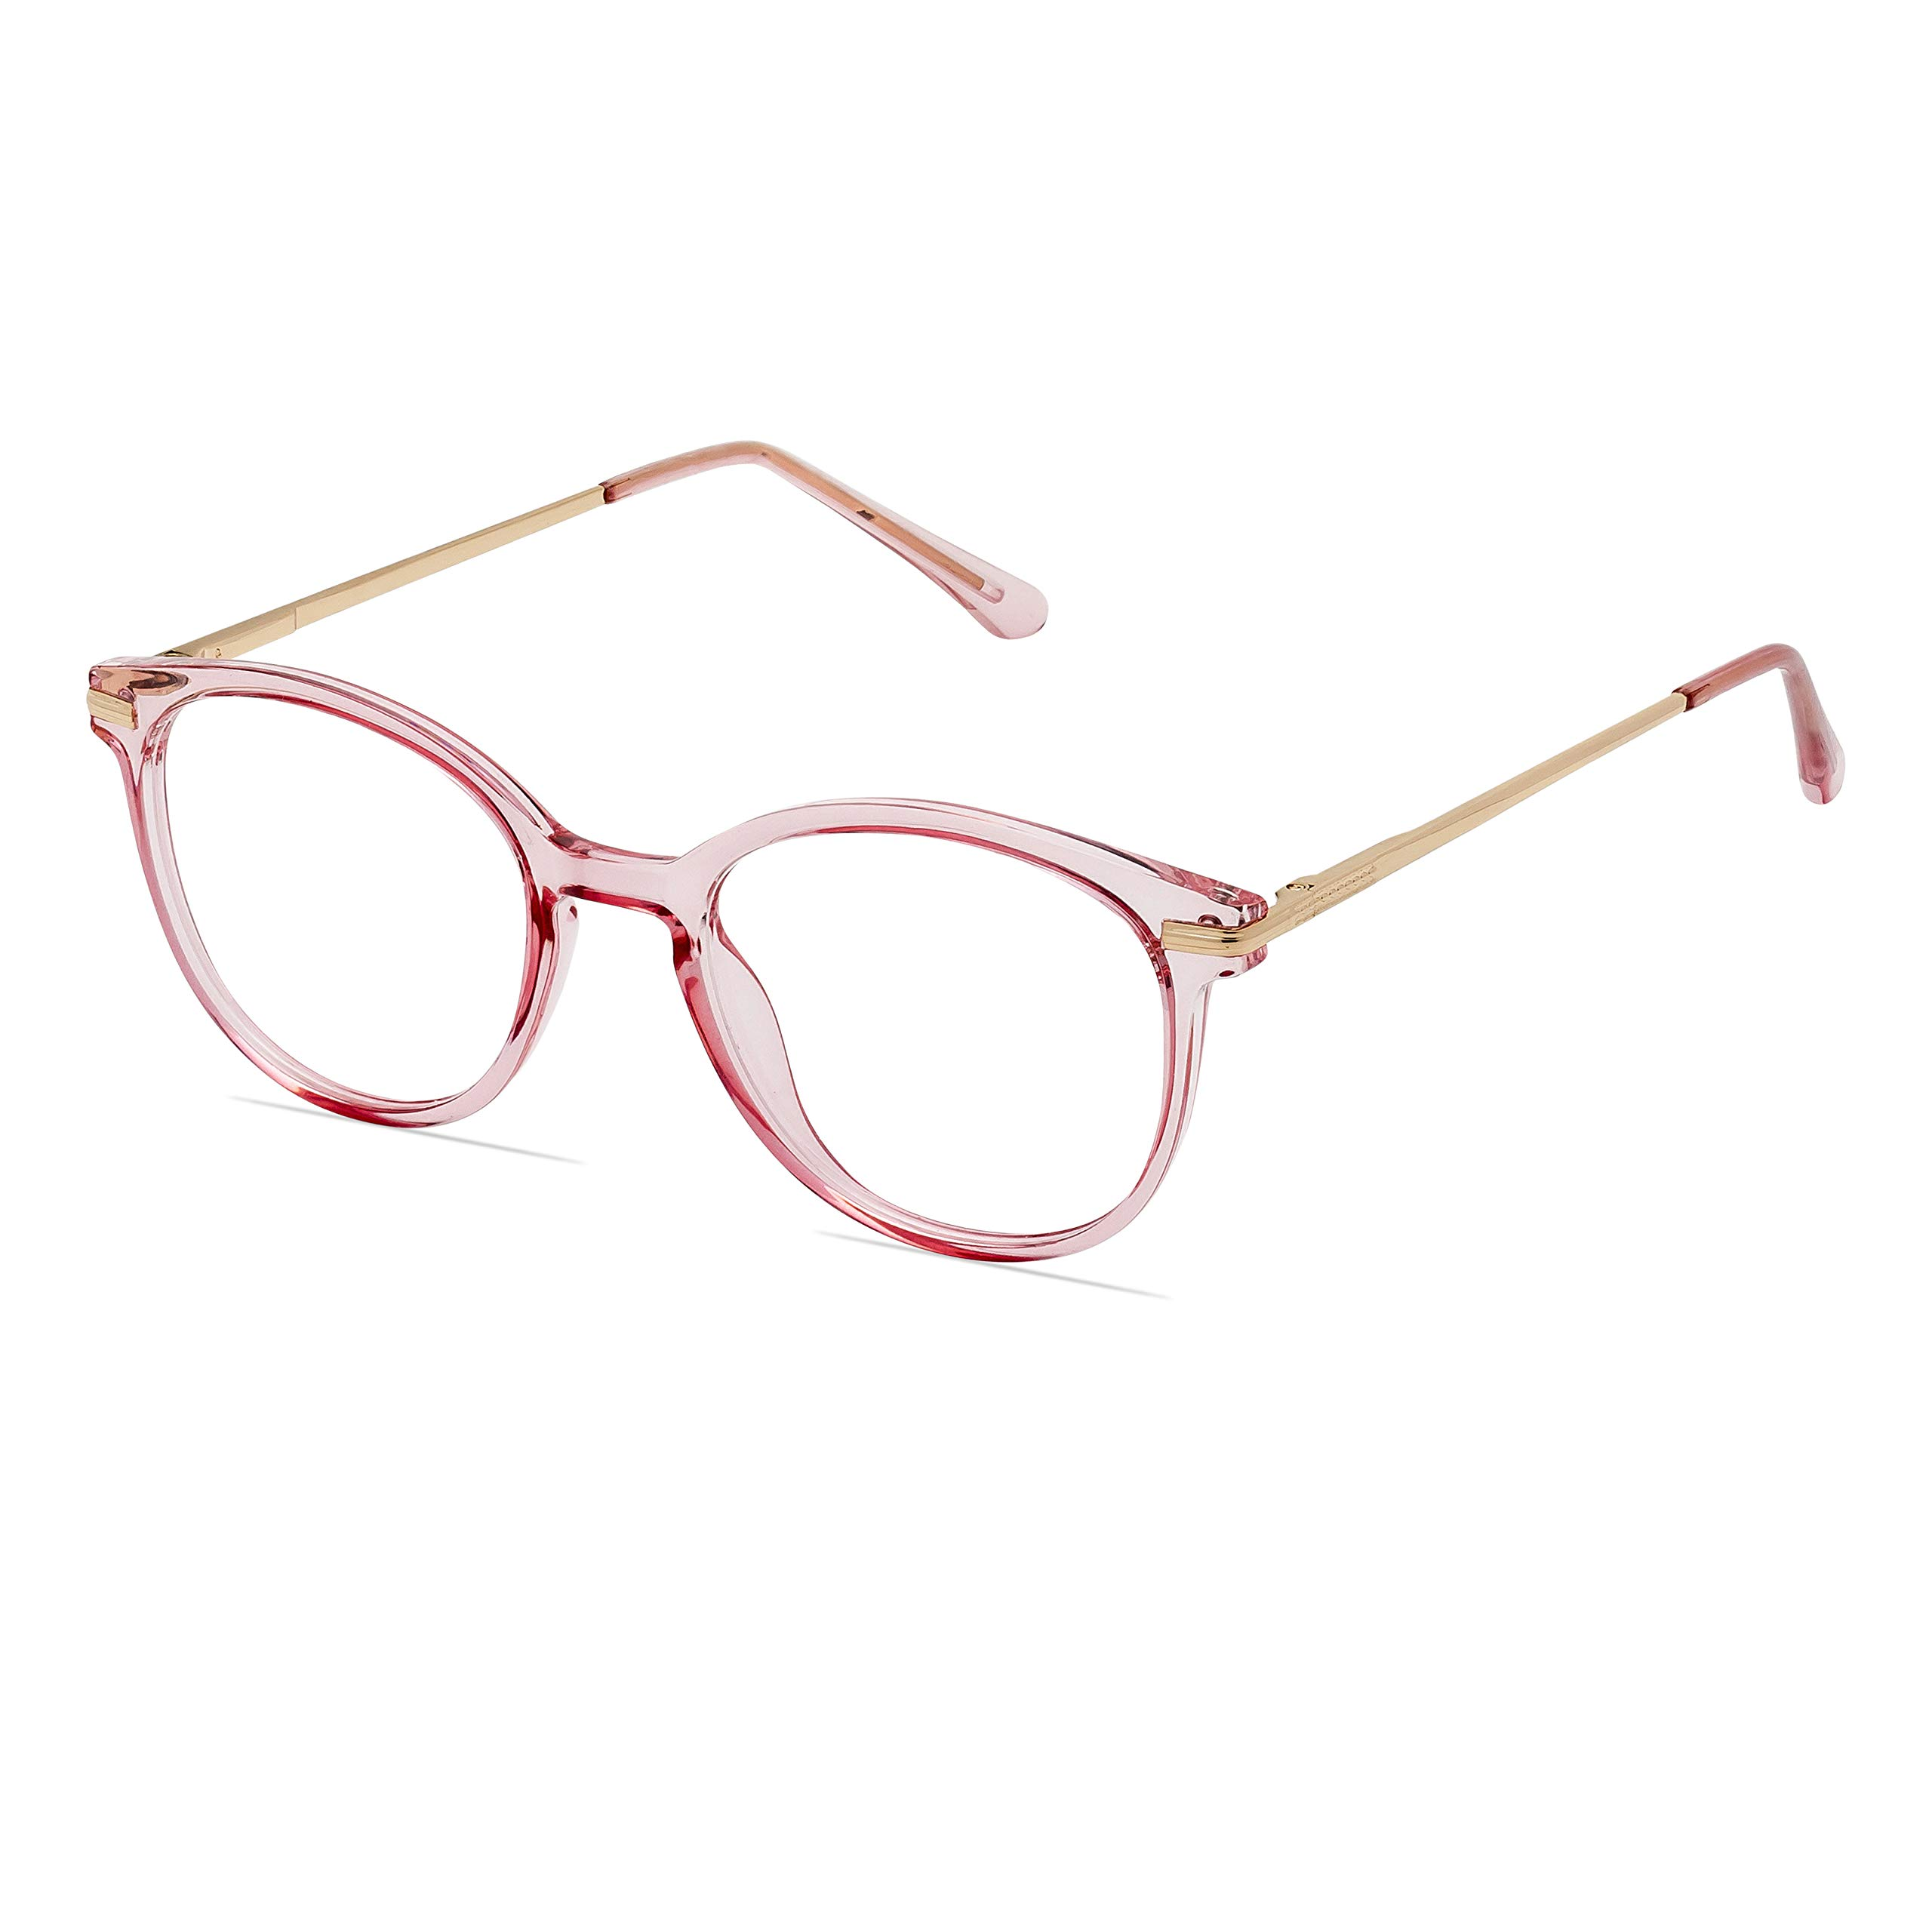 Premium Blue light blocking glasses - Acetate Frame equipped with spring hinges